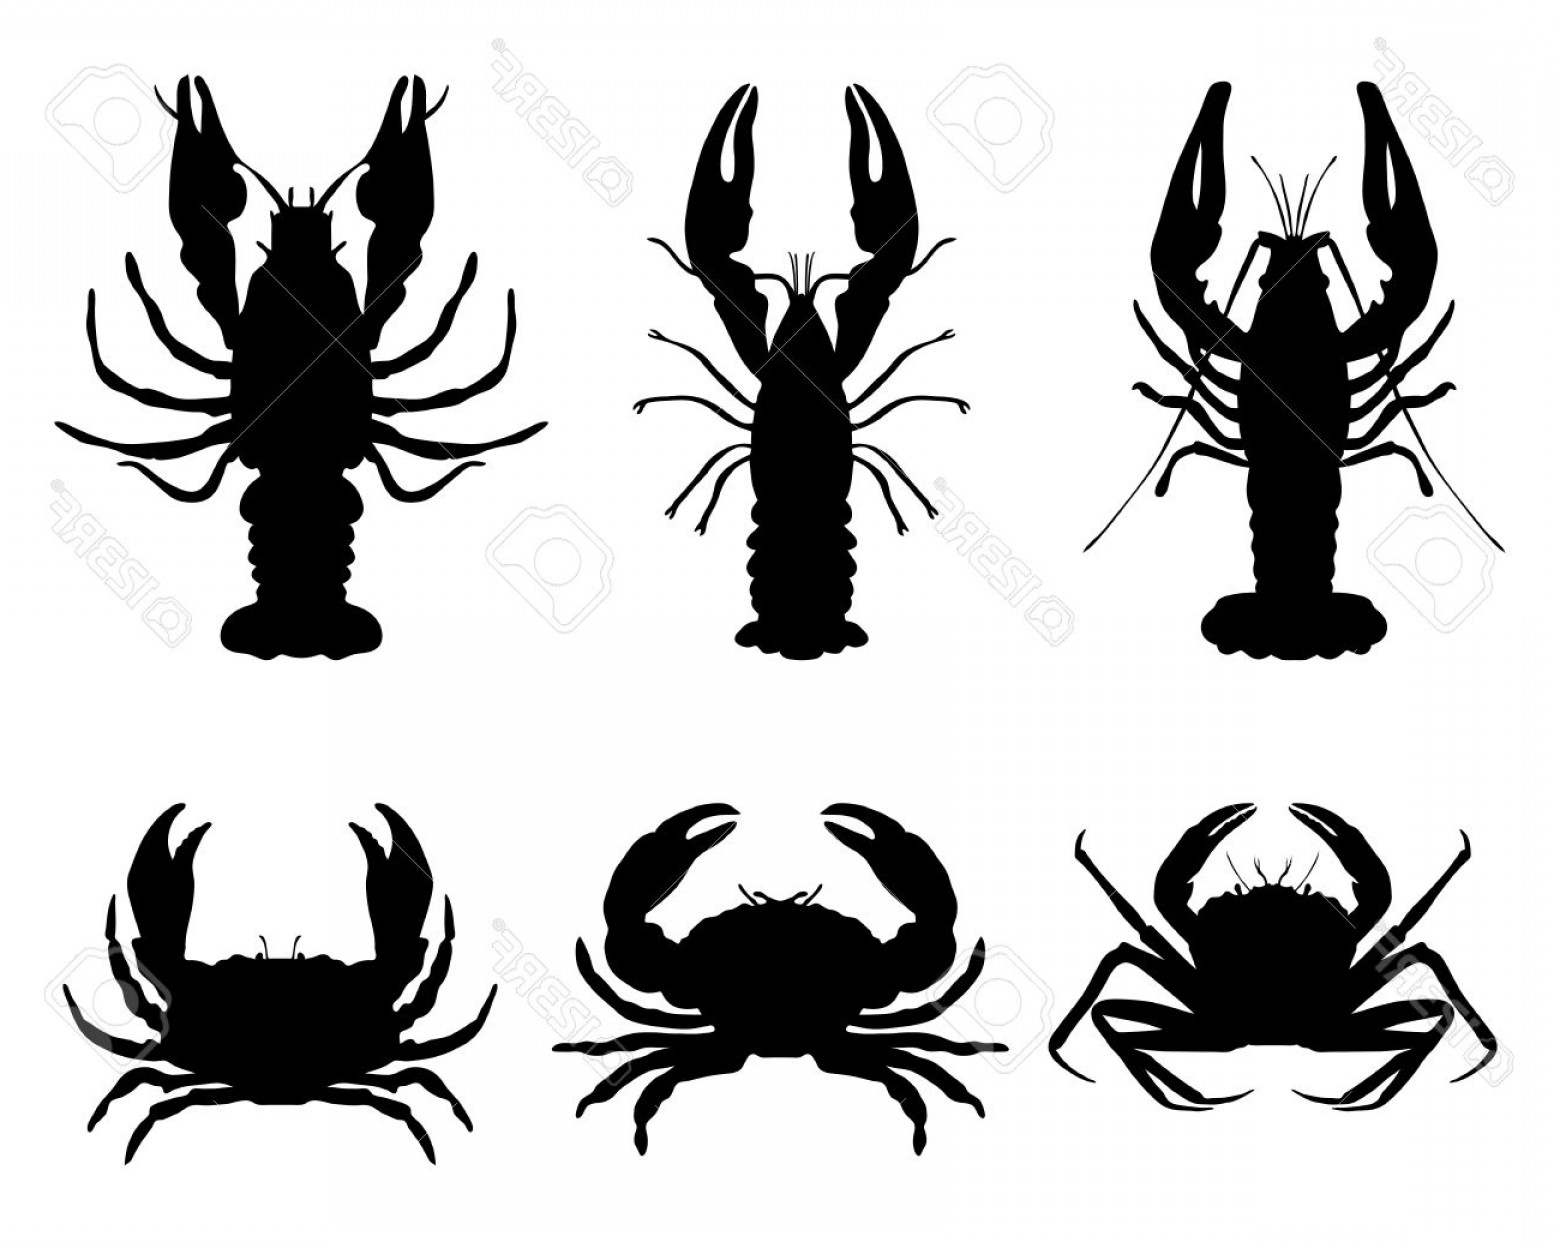 Crab Vector Black: Photostock Vector Black Silhouettes Of Crawfish And Crab Vector